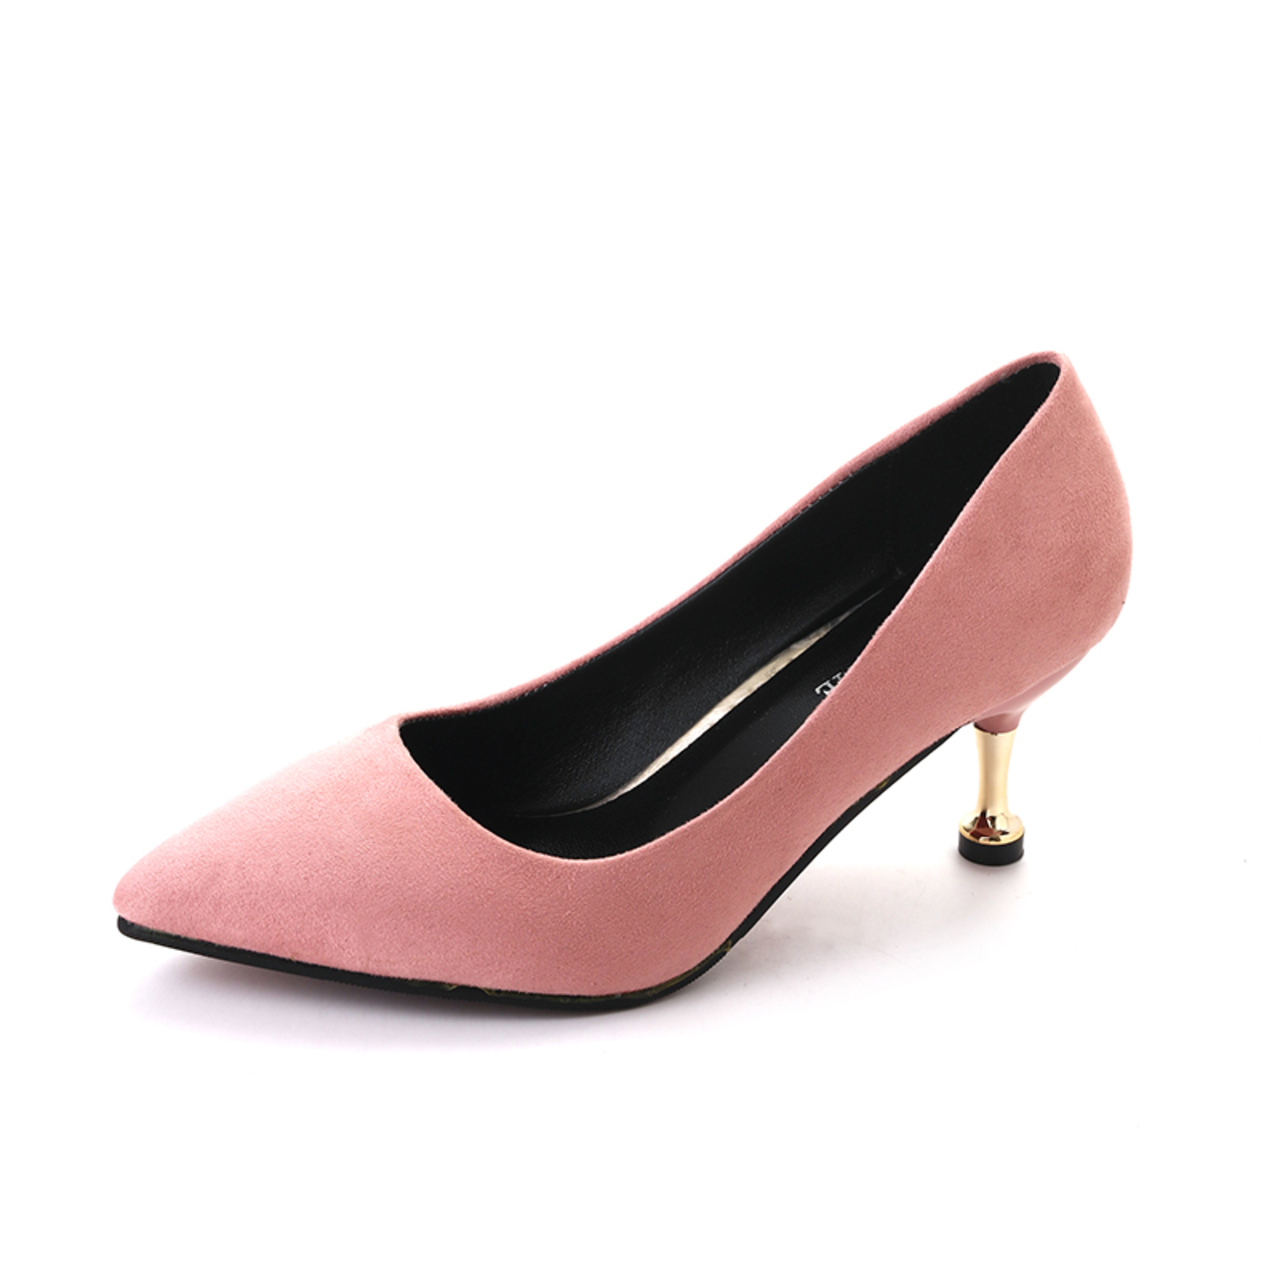 e4ef56259 New shallow high-heeled shoes with pointed thin heels pink 41: Product No:  2895106. Item specifics: Brand: